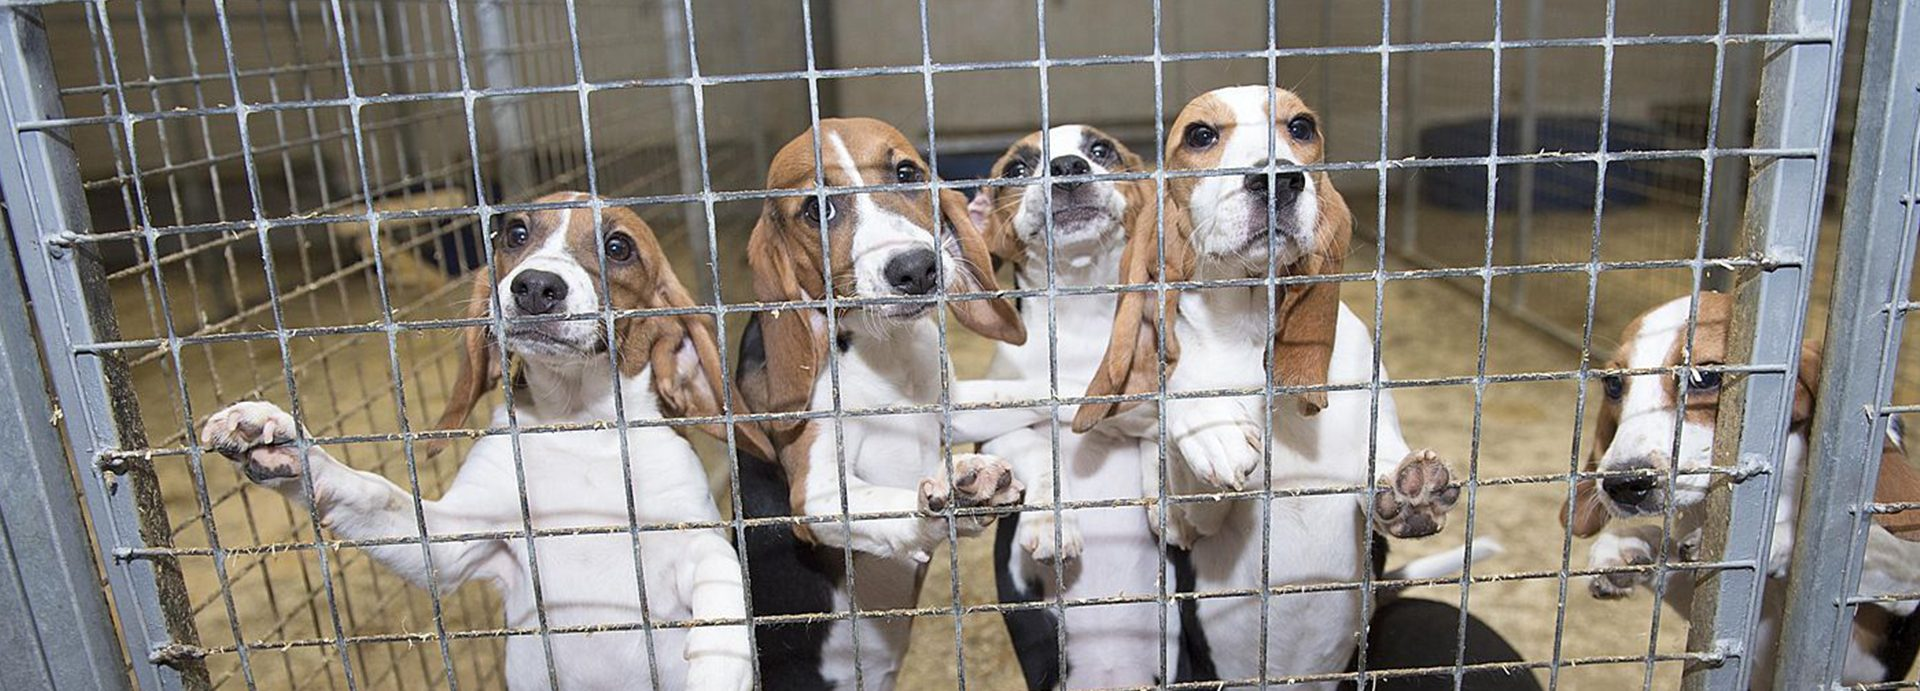 EPA announces Animal Testing phase out